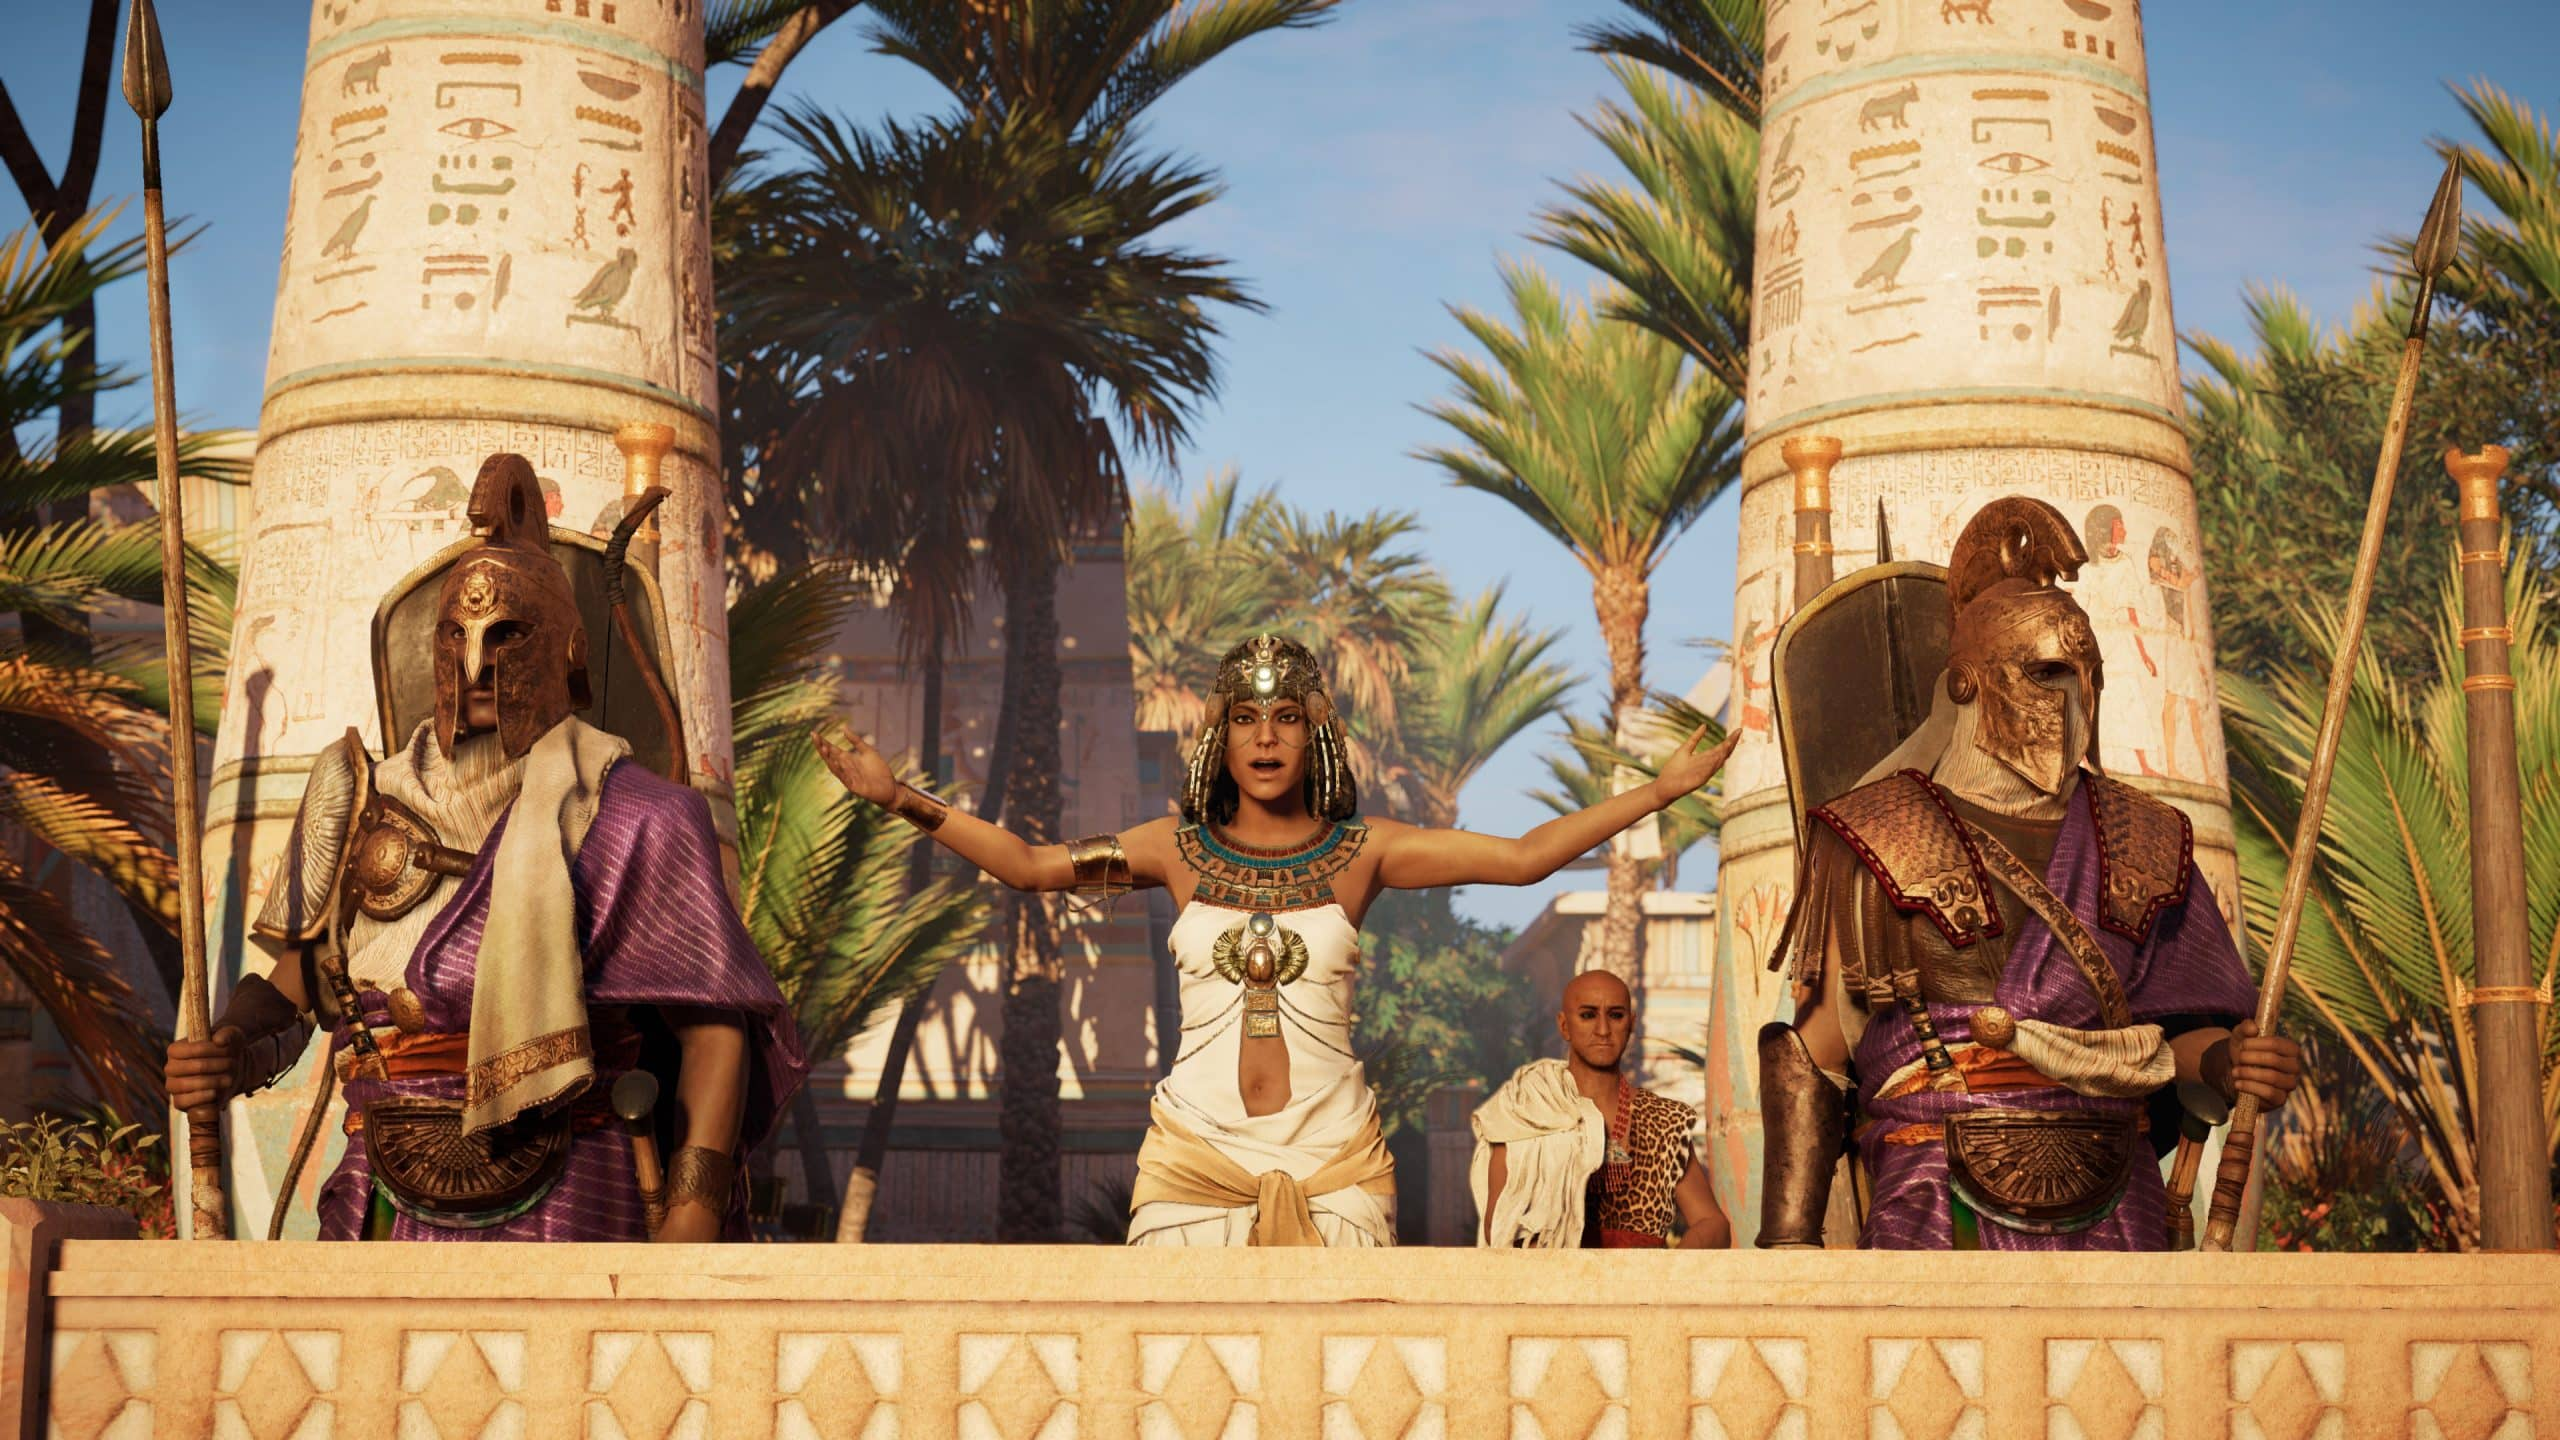 ac7 Assassin's Creed Origins Review - The Best Game In The Franchise Uncategorized